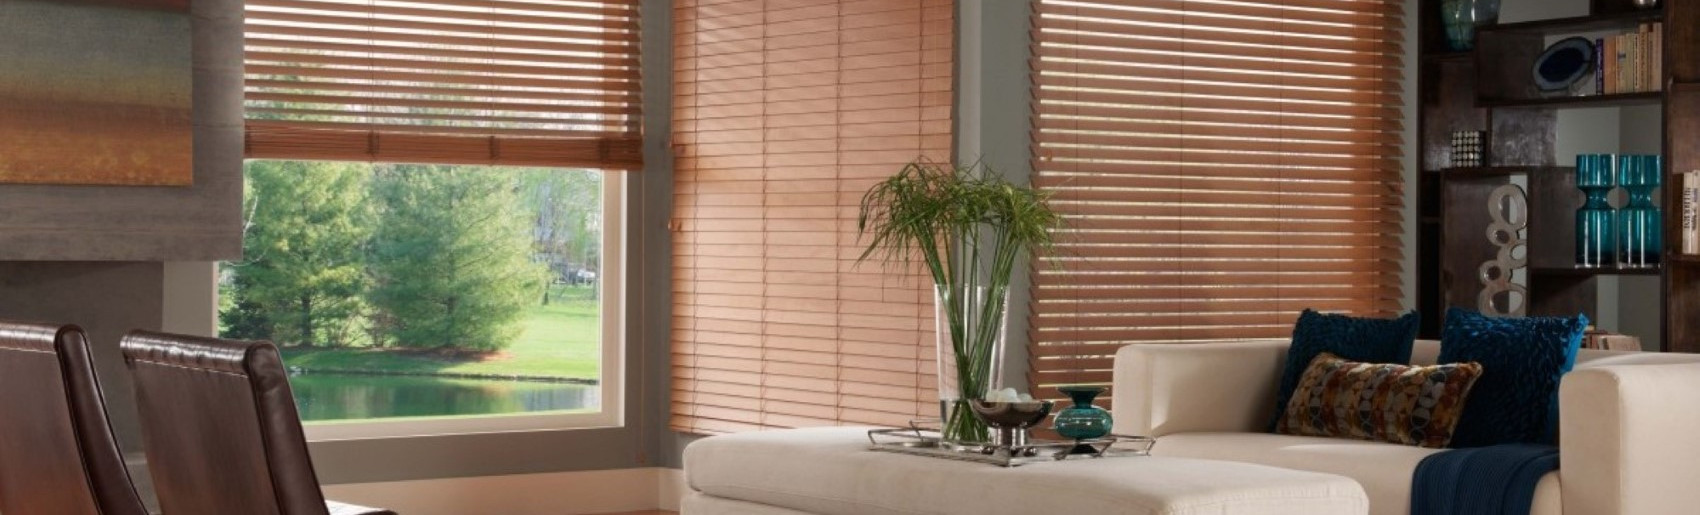 Window Treatment Products in Fresno